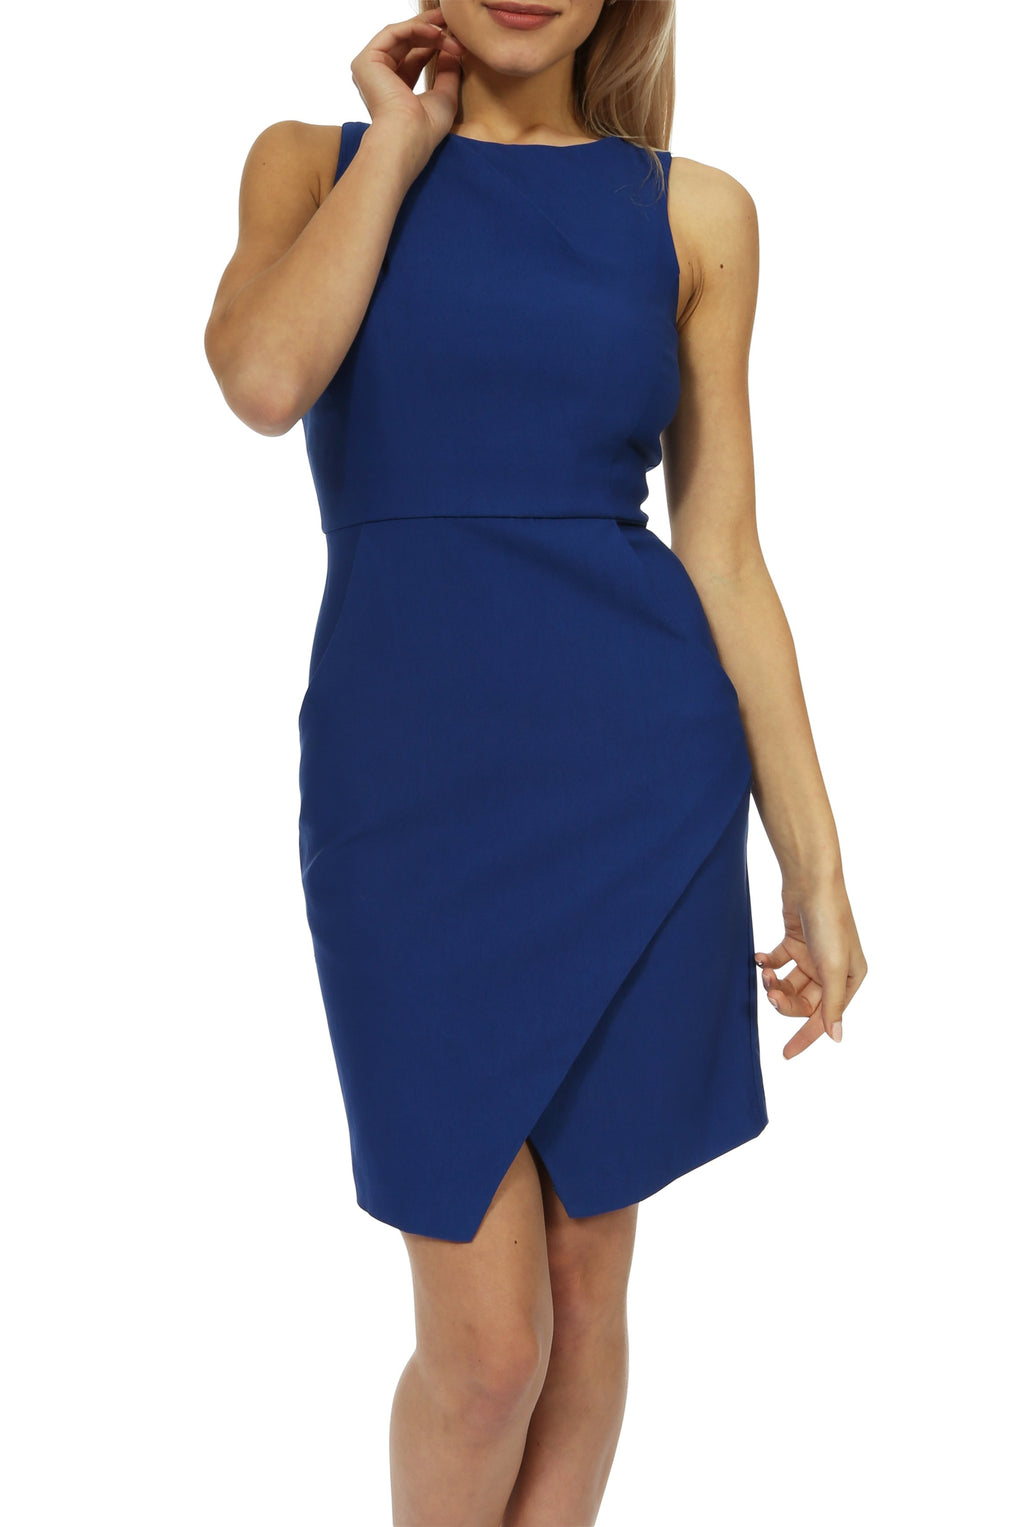 Teeze Me | Sleeveless Round Neck Shoulder Pleated Sheath Dress With Pockets | Royal